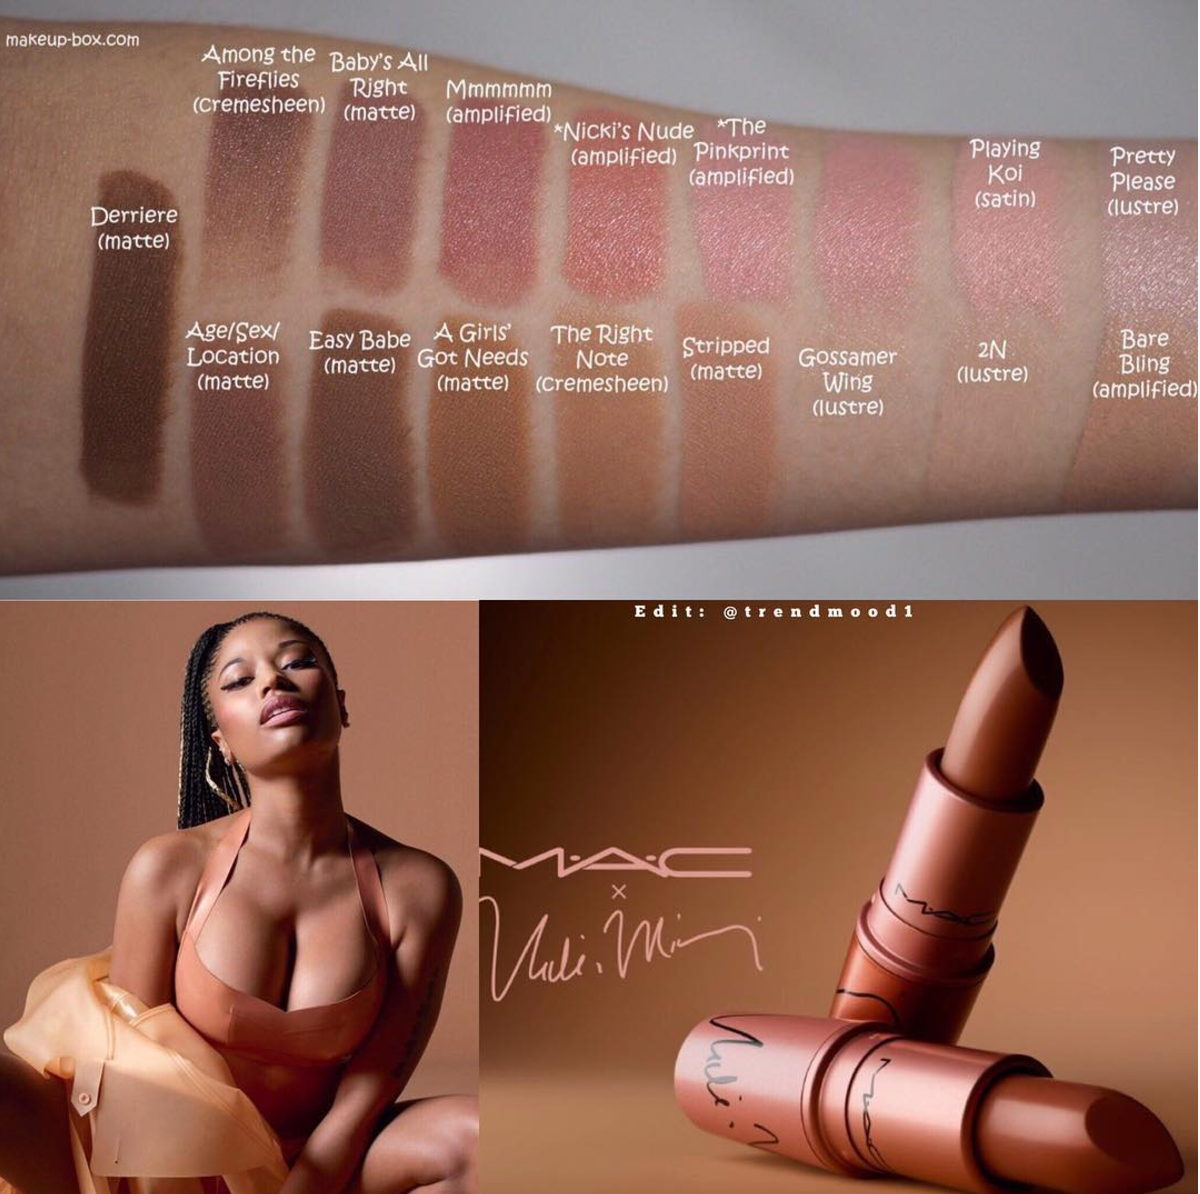 MAC X Nicki Minaj Limited Edition nude lipstick collection in shades Nicki's Nude and The Pink Print